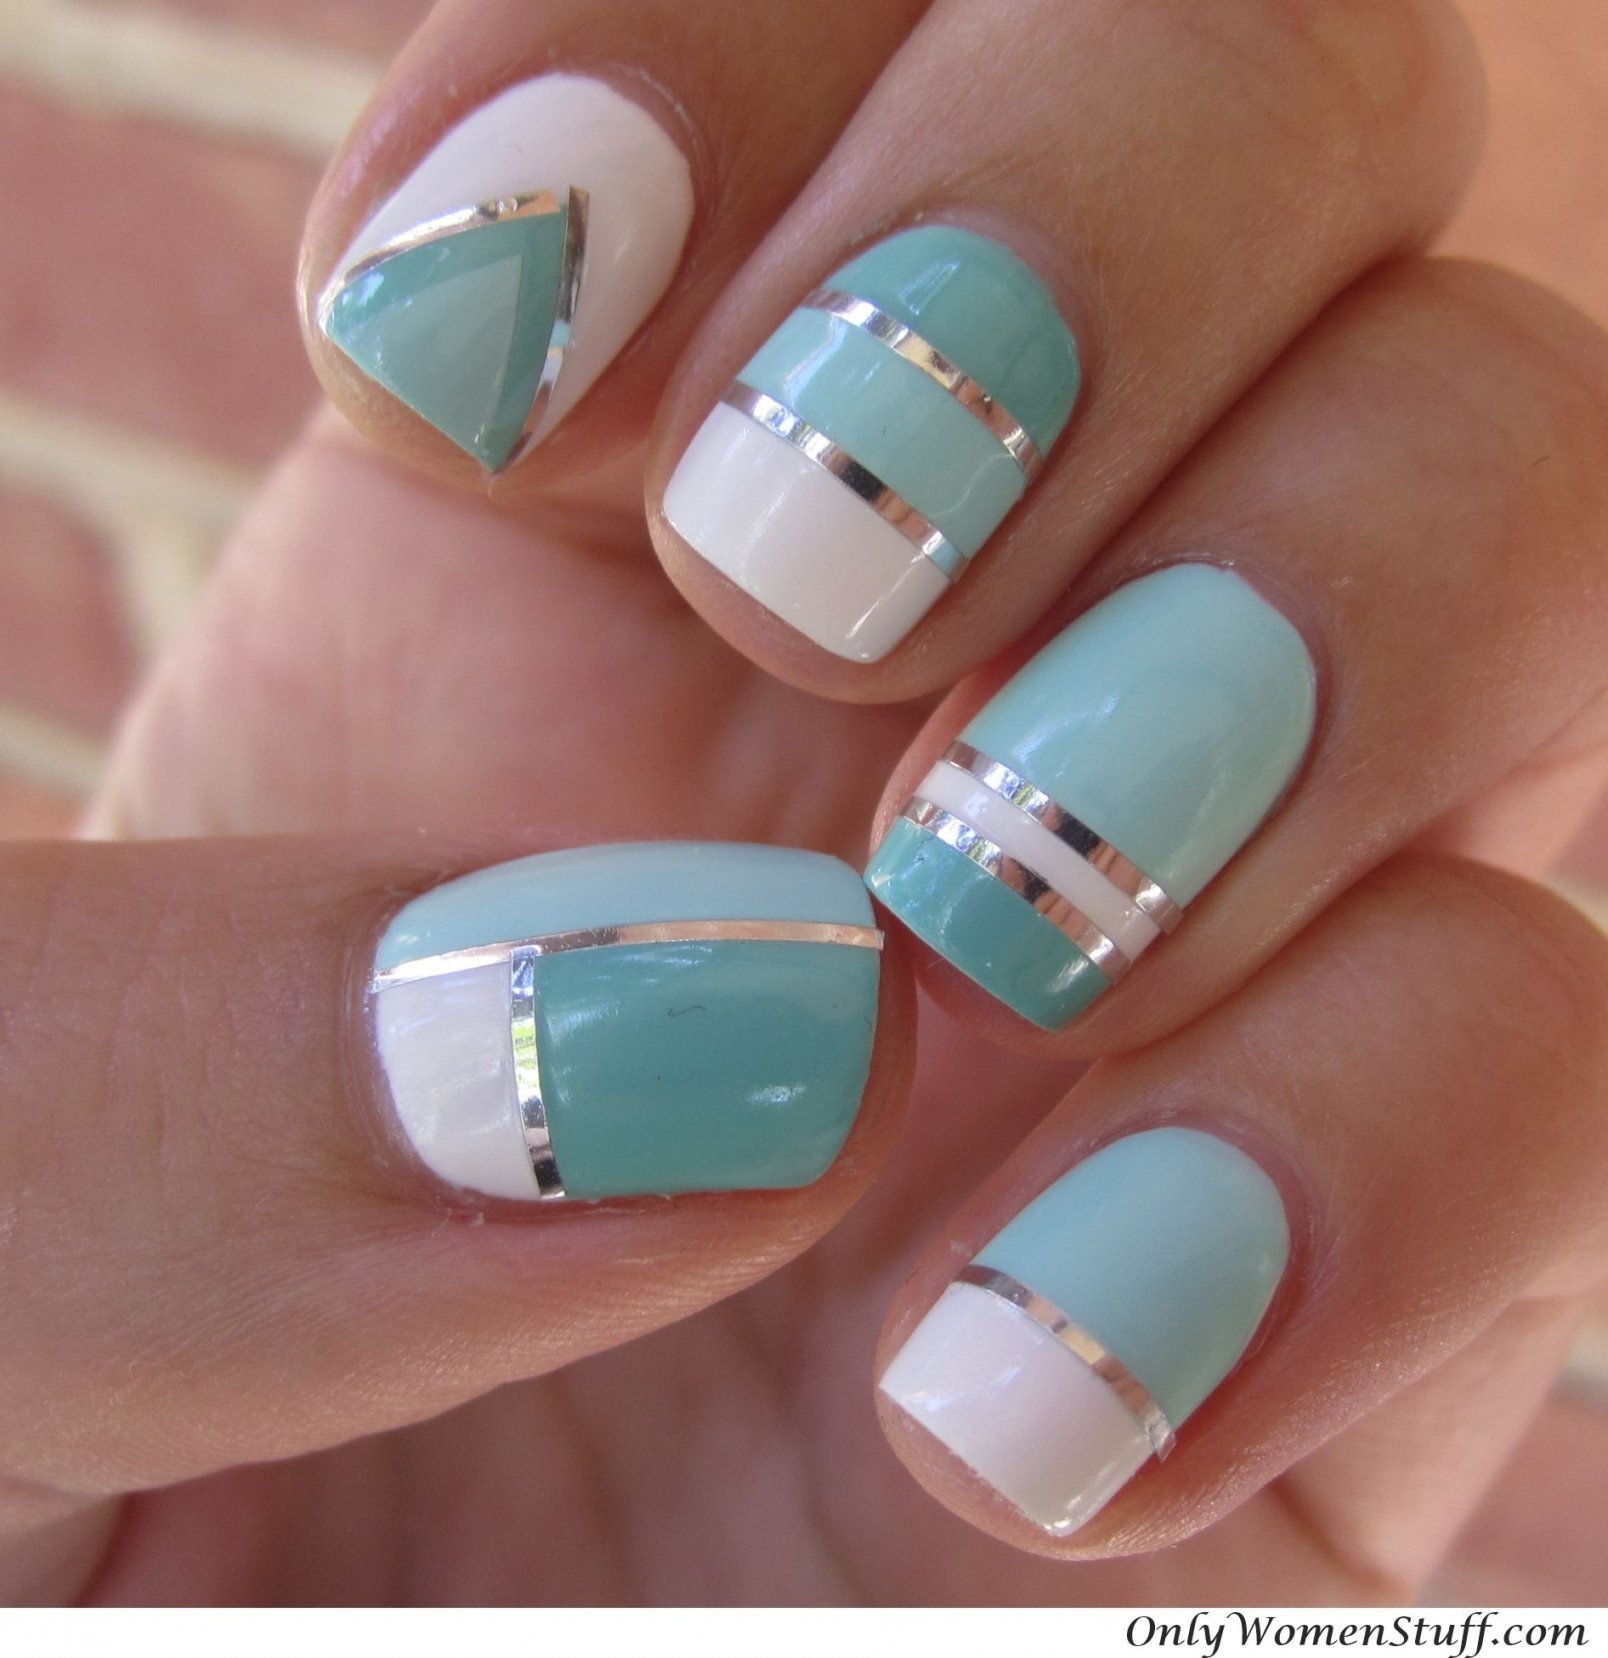 10 Nice Nail Design Ideas For Short Nails short nail art designs ideas vintage nail designs for short nails 1